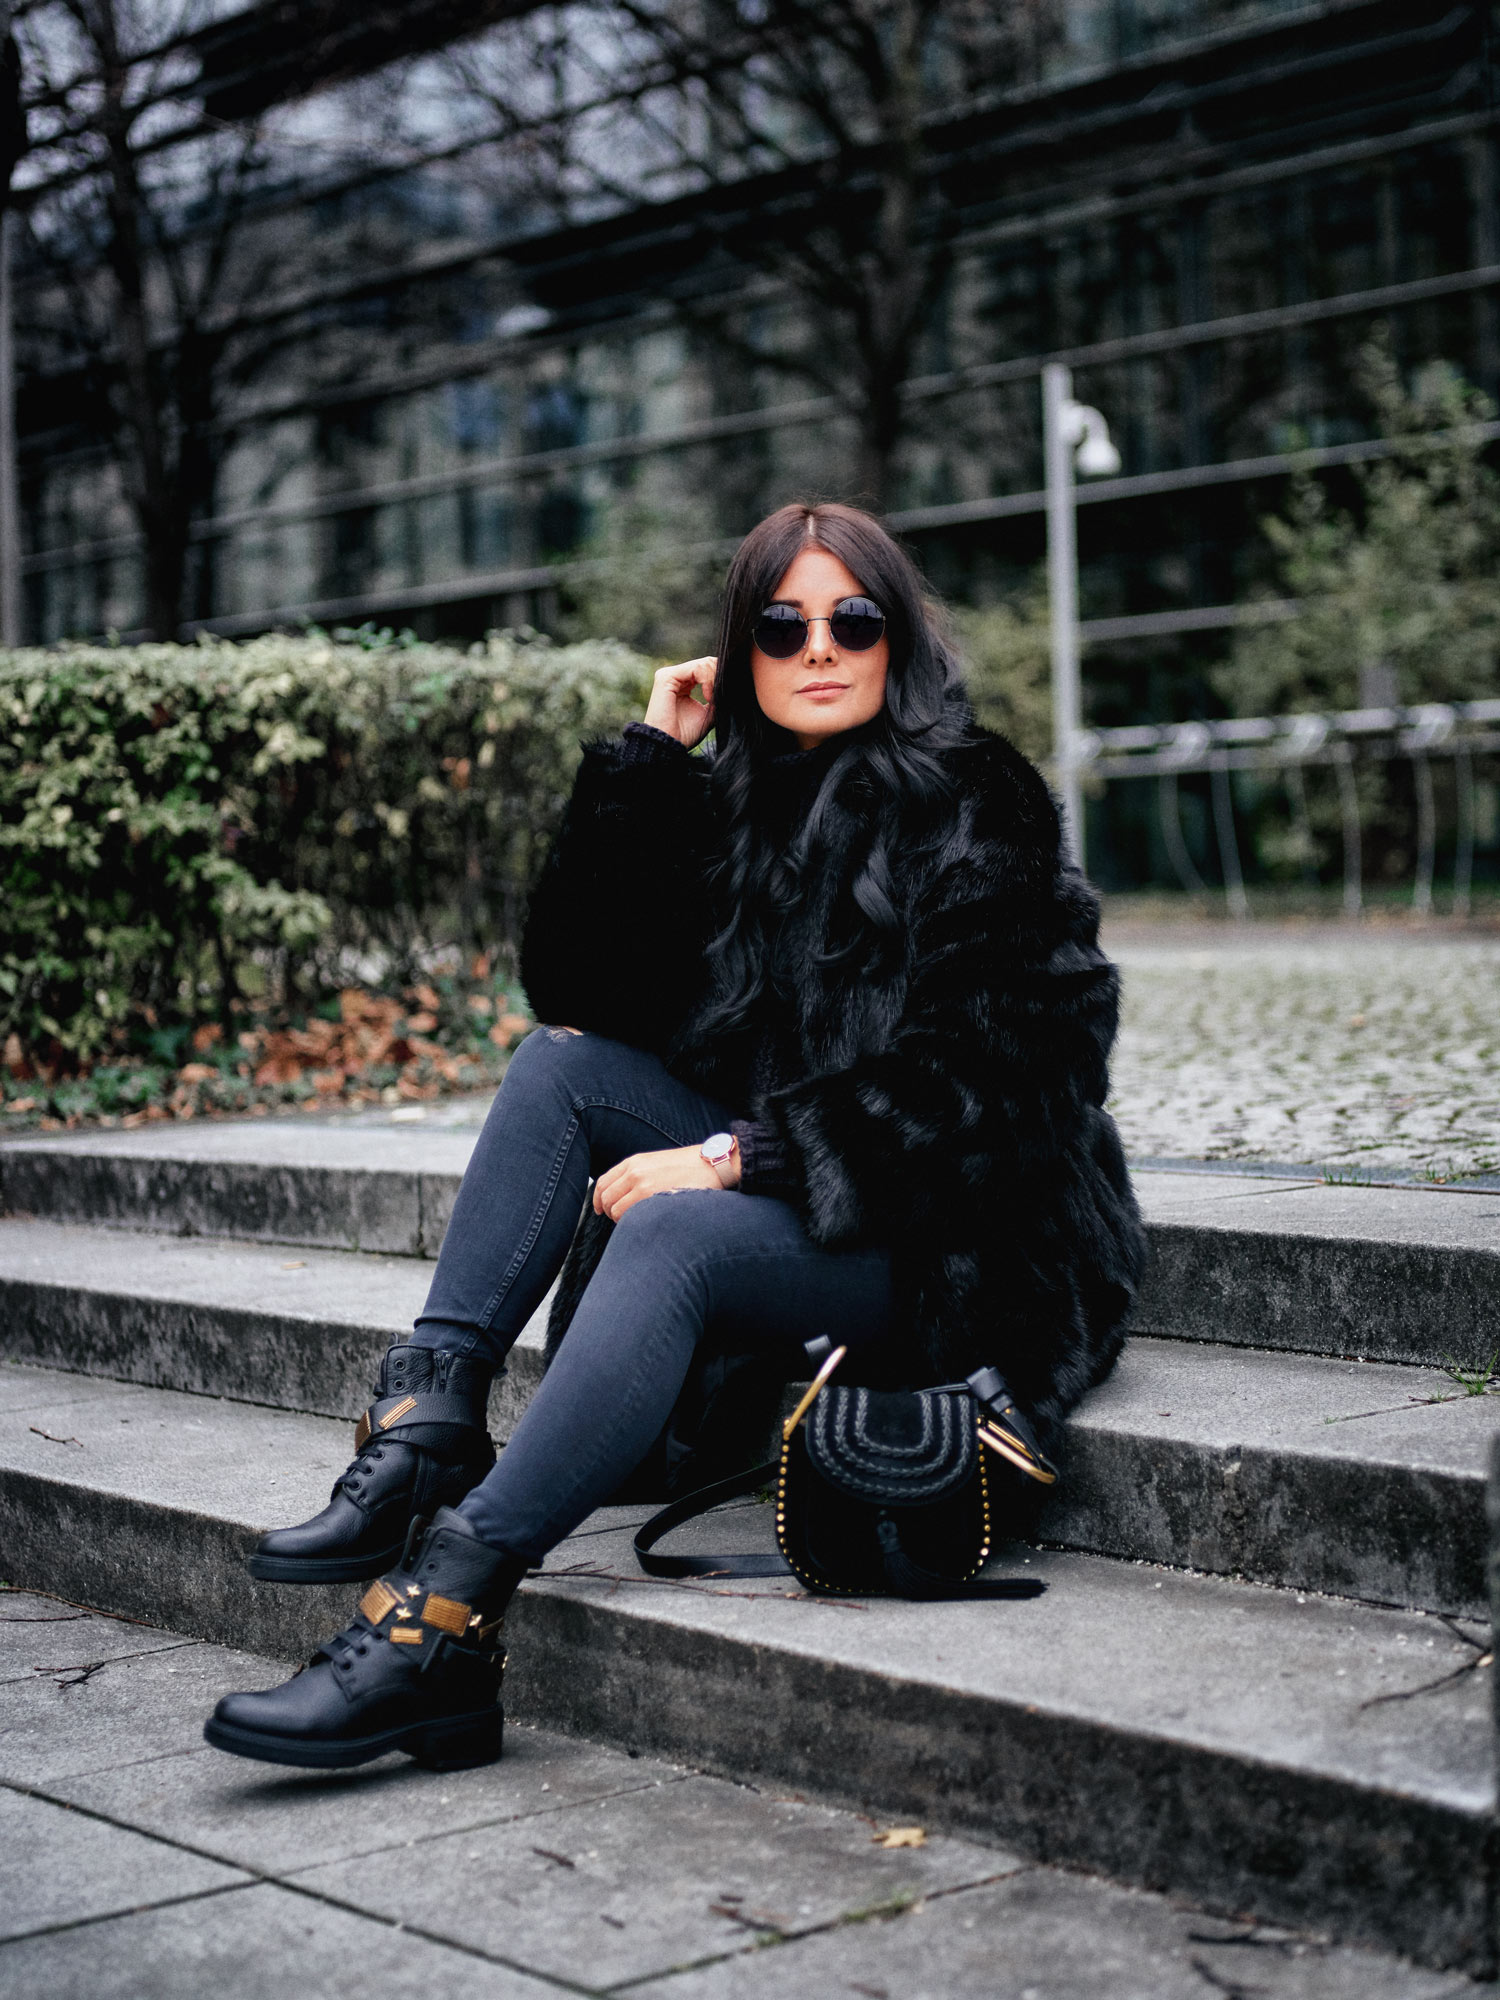 fashion-blogger-aus-muenchen-fashionblogger-lifestyleblogger-beautyblogger-fashion-blogger-modeblogger-modeblog-munich-blog-muenchen-army-boots-rock-my-world